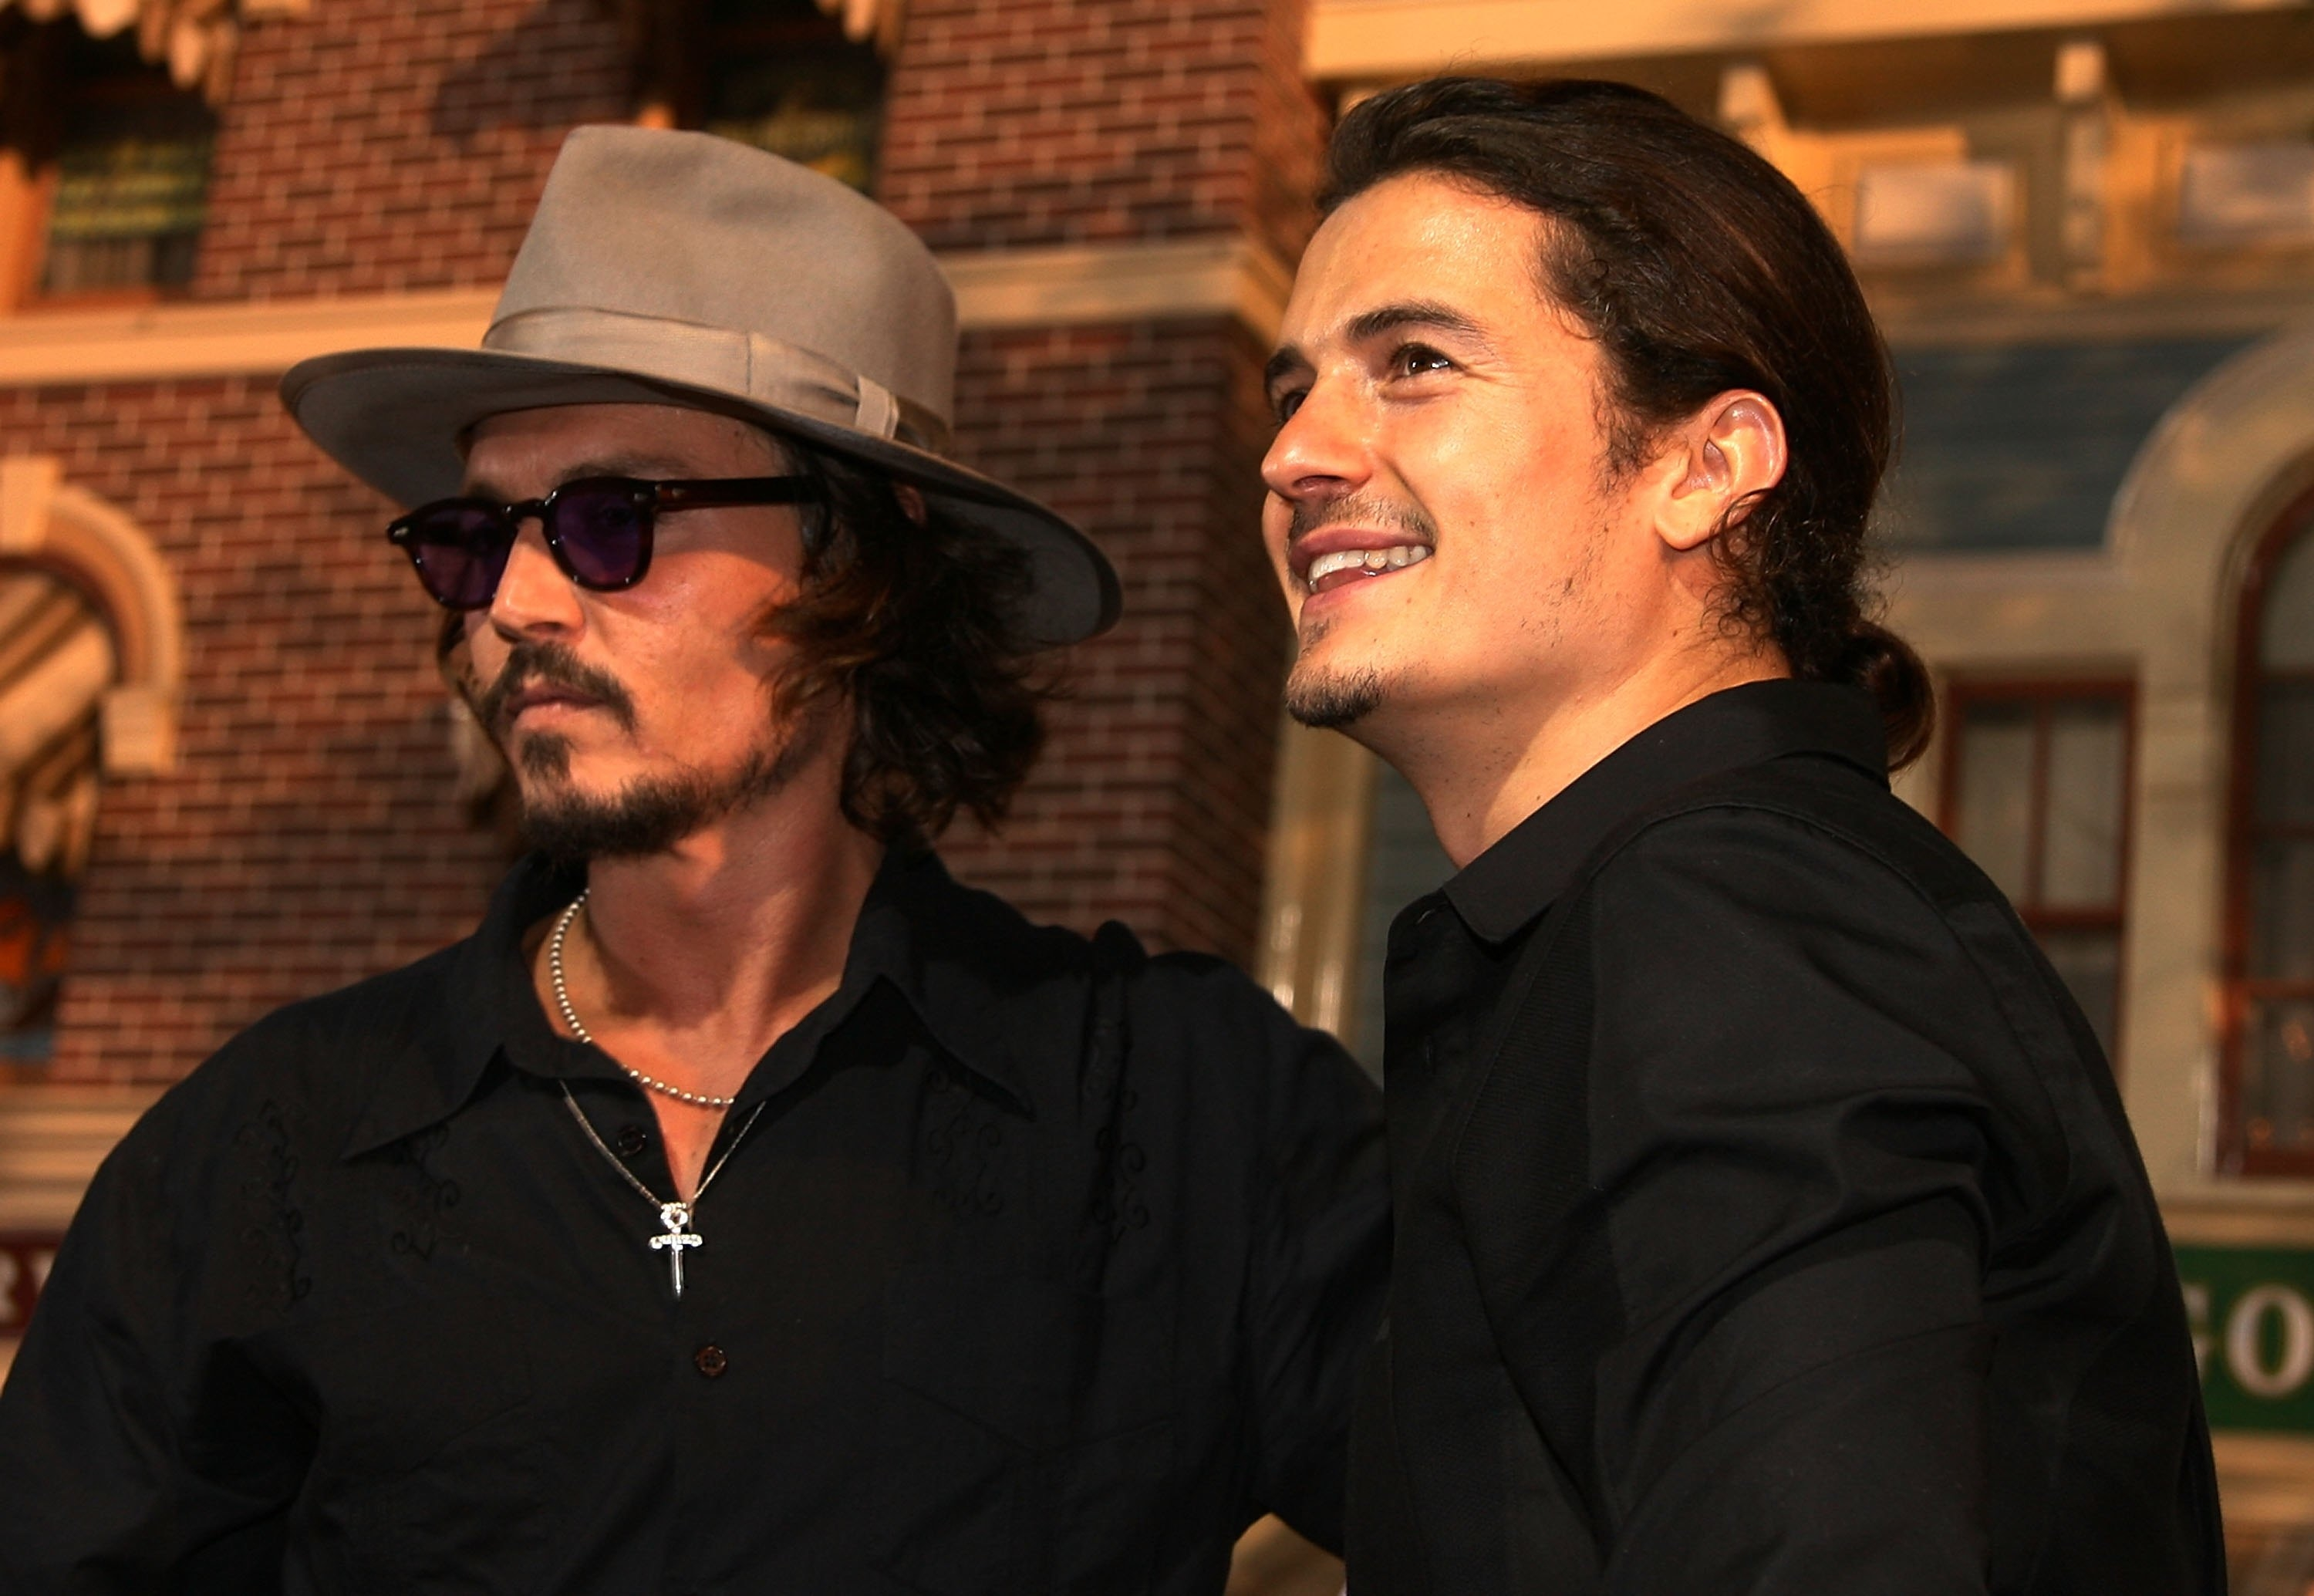 Johnny Depp Orlando Bloom Premiere Pirates in. - Just Jared Pictures of johnny depp and orlando bloom